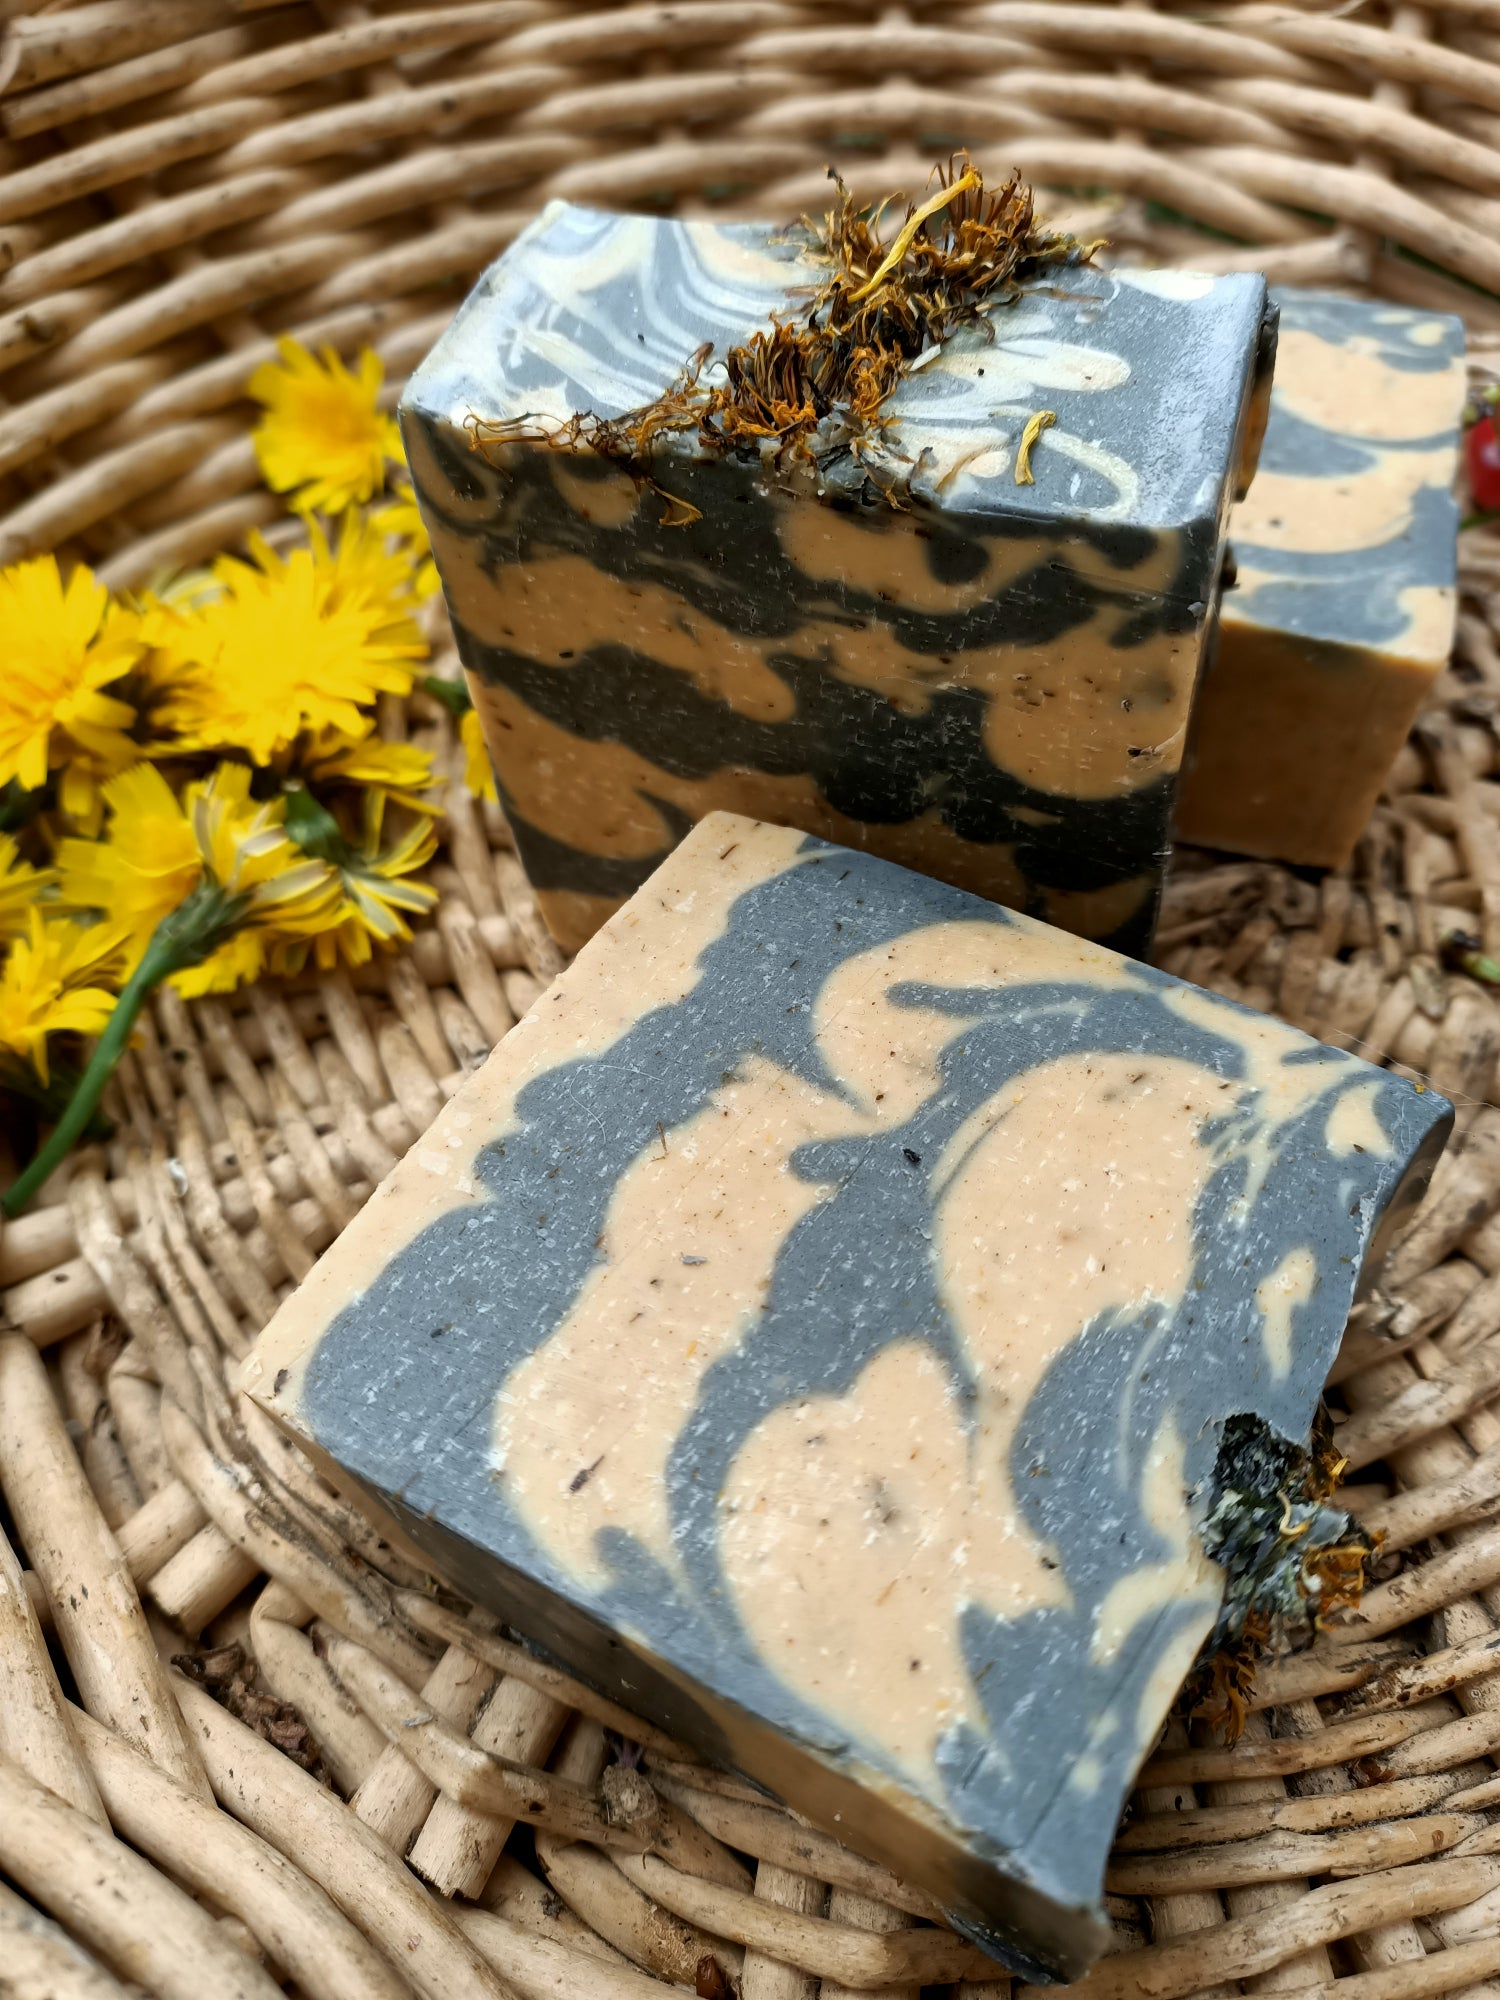 Image of Dandelion Honey and Activated Charcoal soap